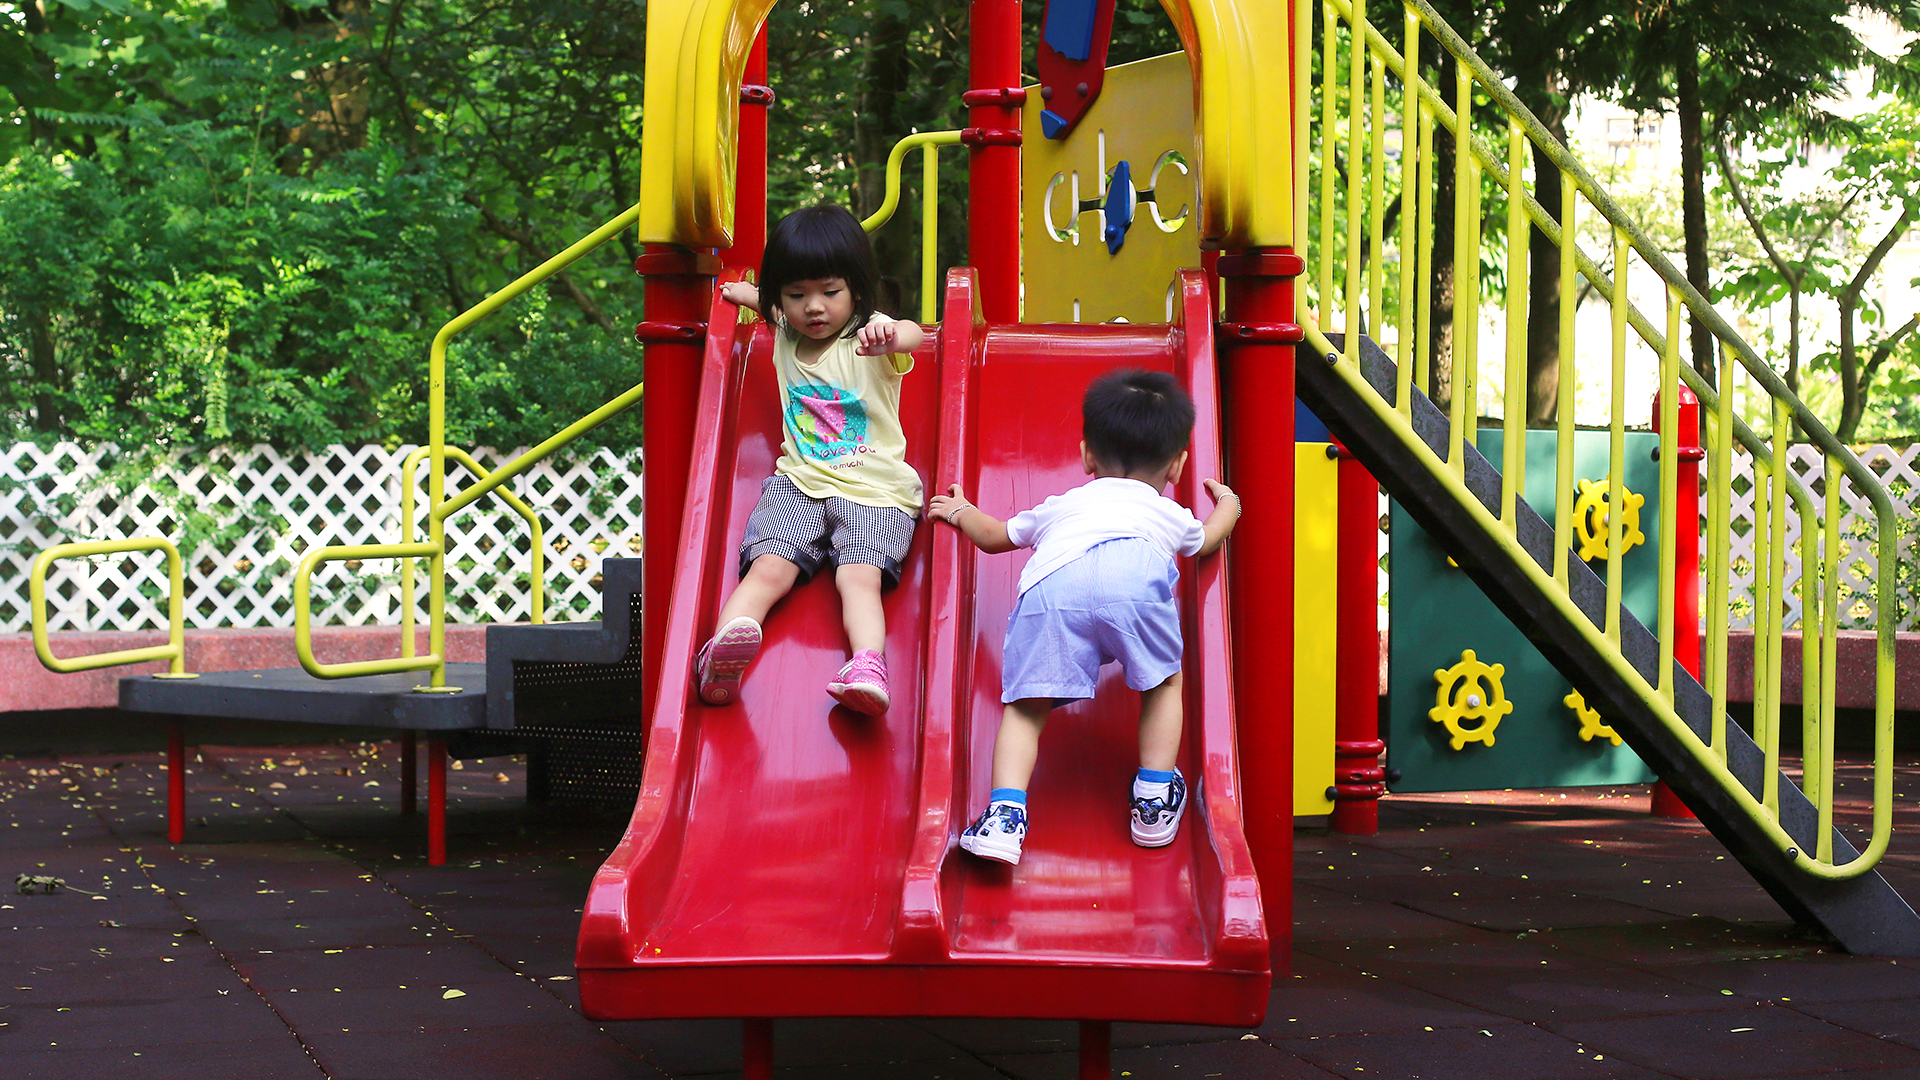 Two children play on a traditional playground